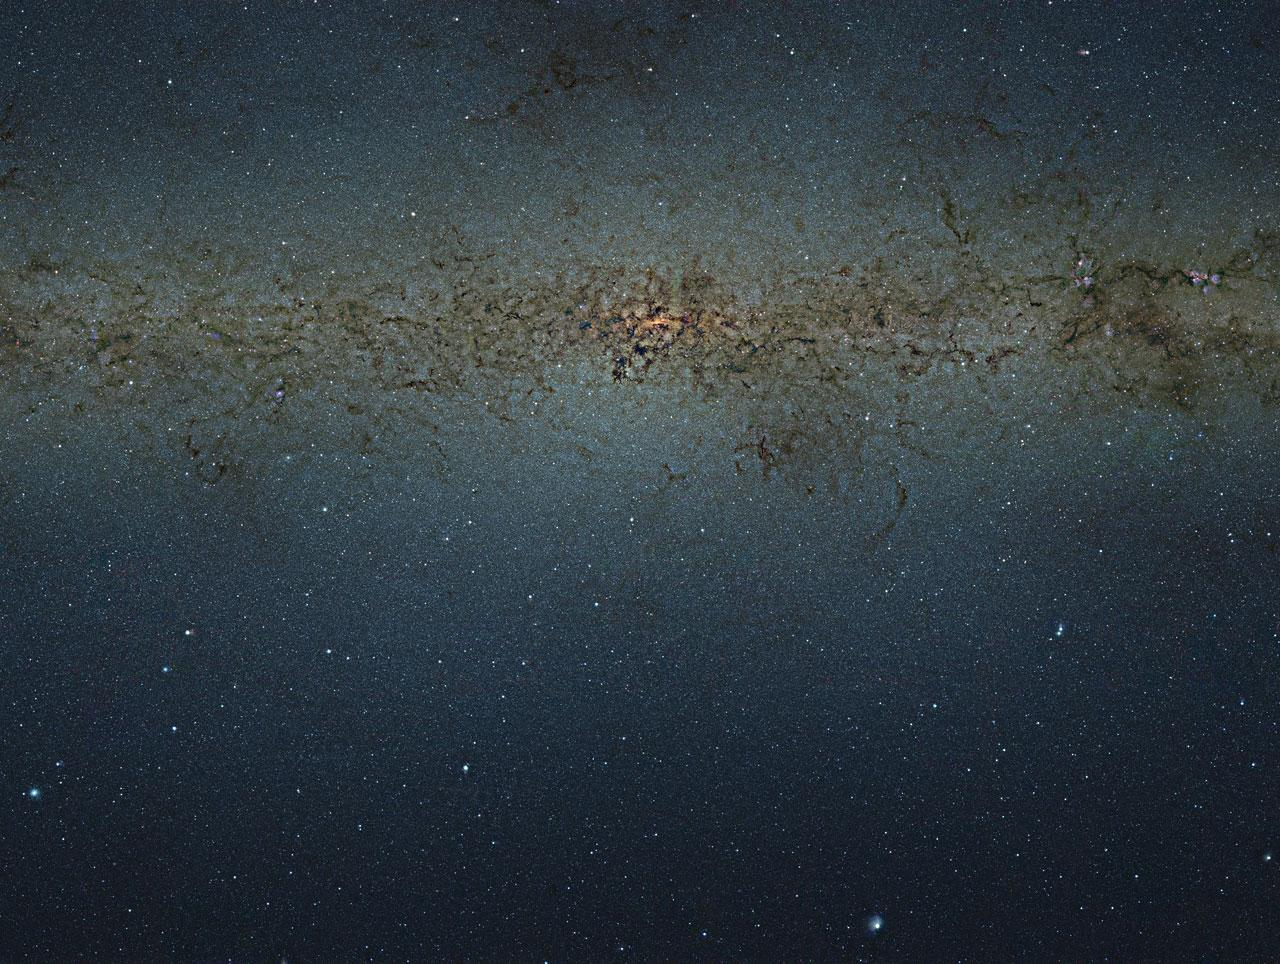 ESO - eso1242a - VISTA gigapixel mosaic of the central parts of the Milky Way